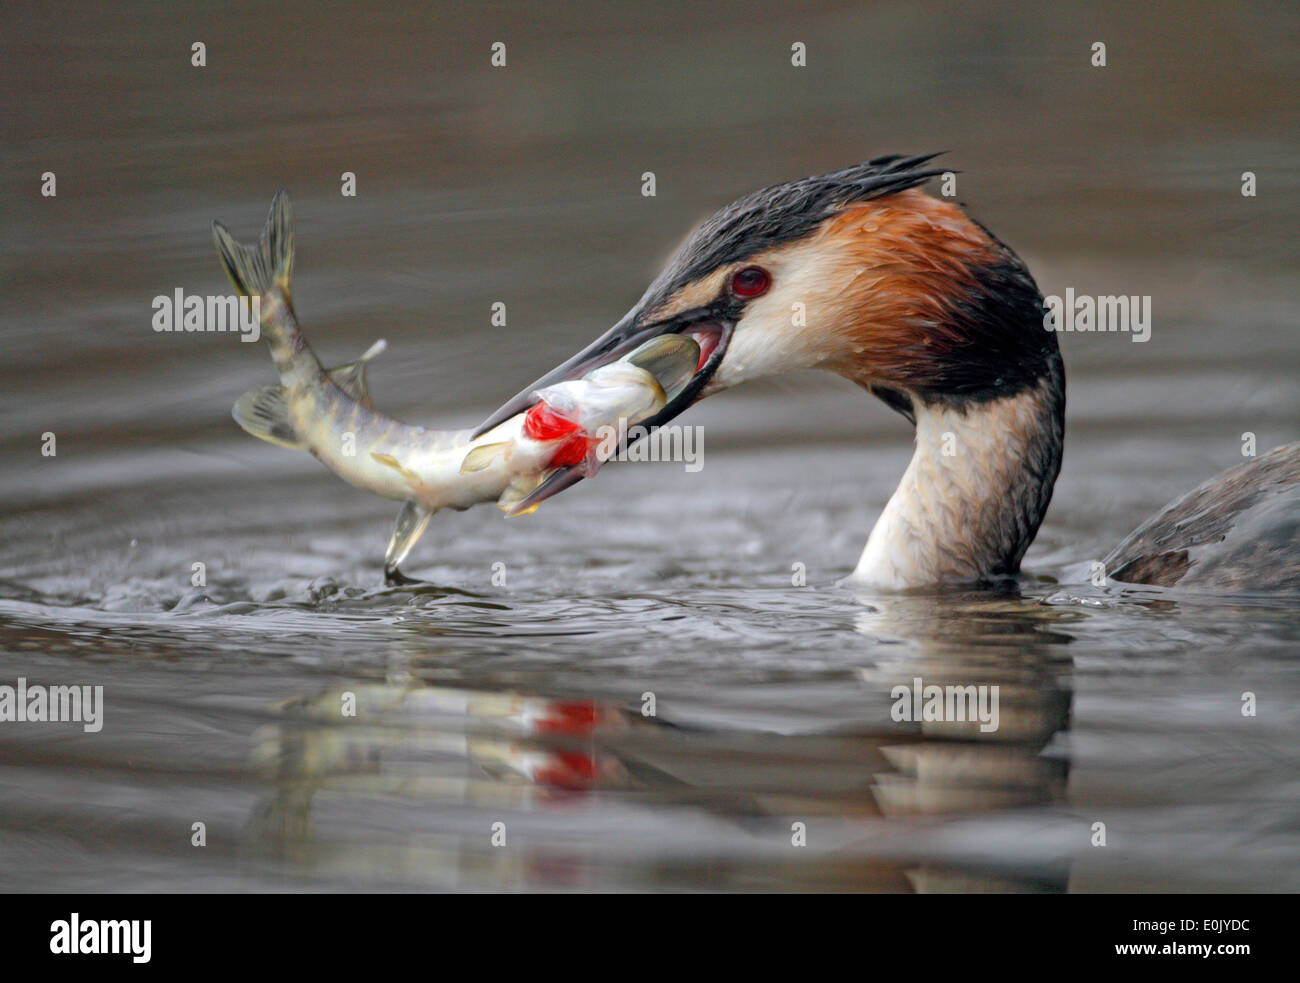 Crested grebe with fish it has caught, Oslo, Norway (Podiceps cristatus) - Stock Image